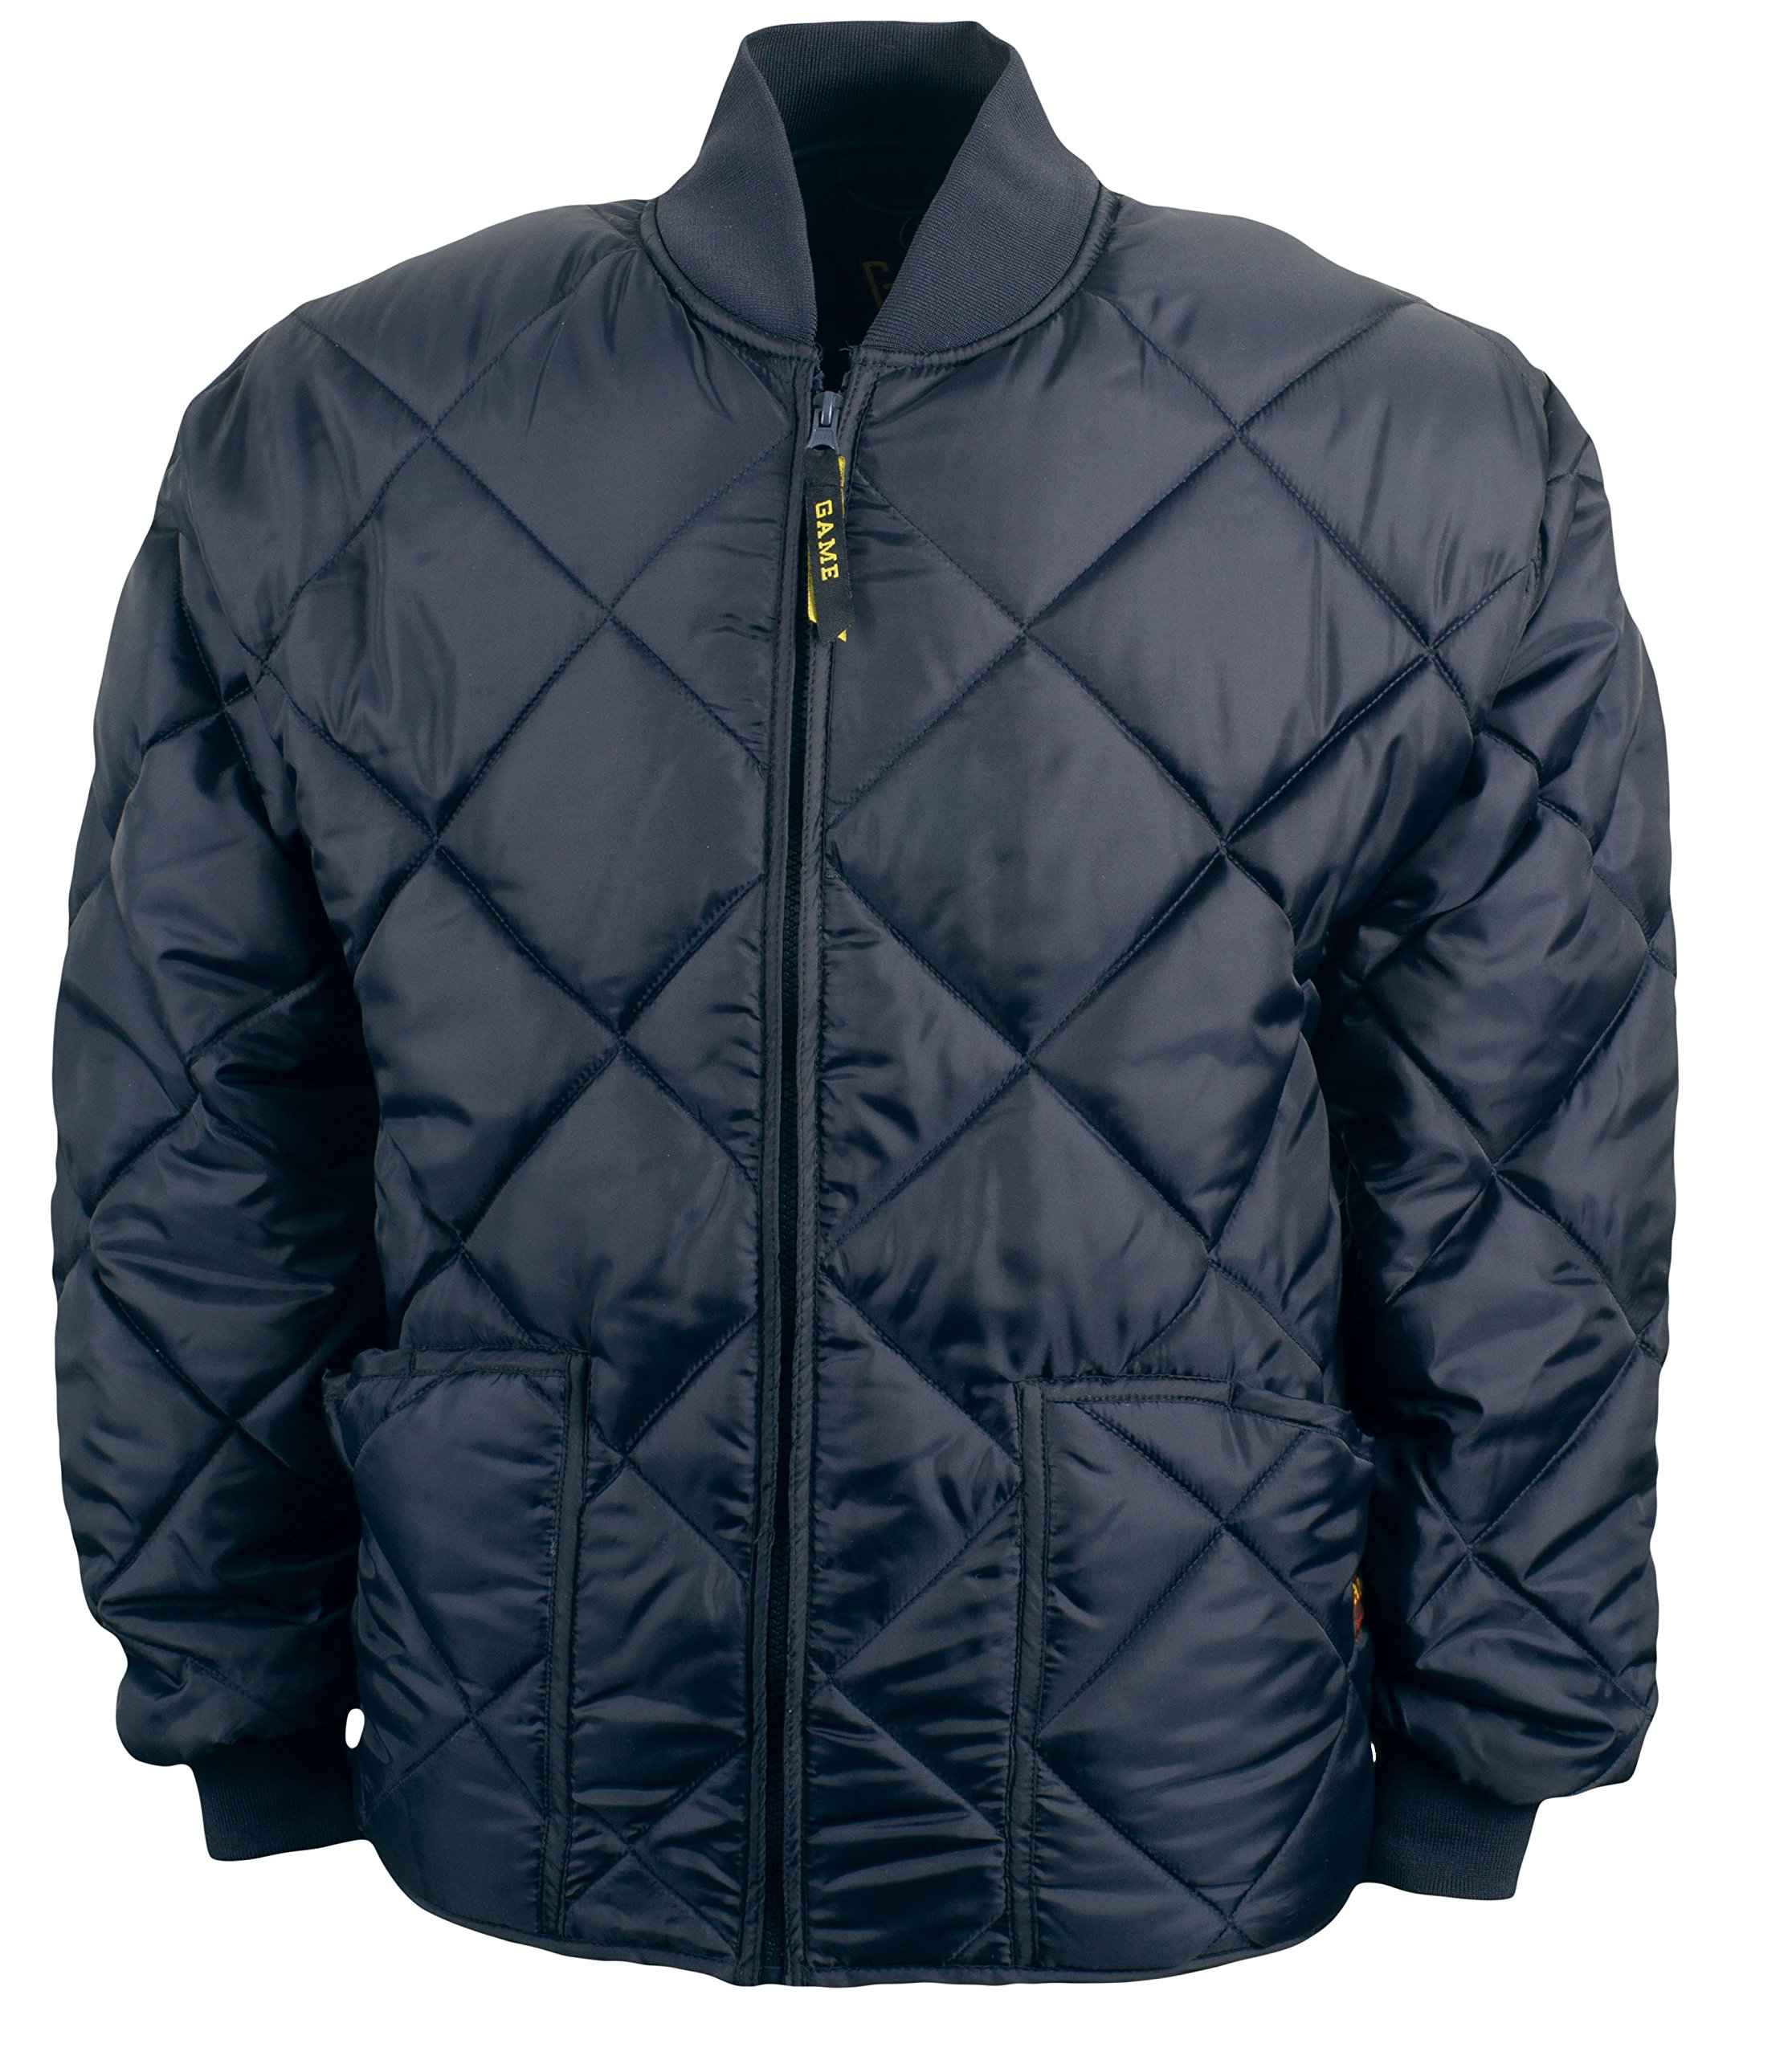 Game Sportswear Men's Diamond Quilt Jacket Large Navy by Game Sportswear